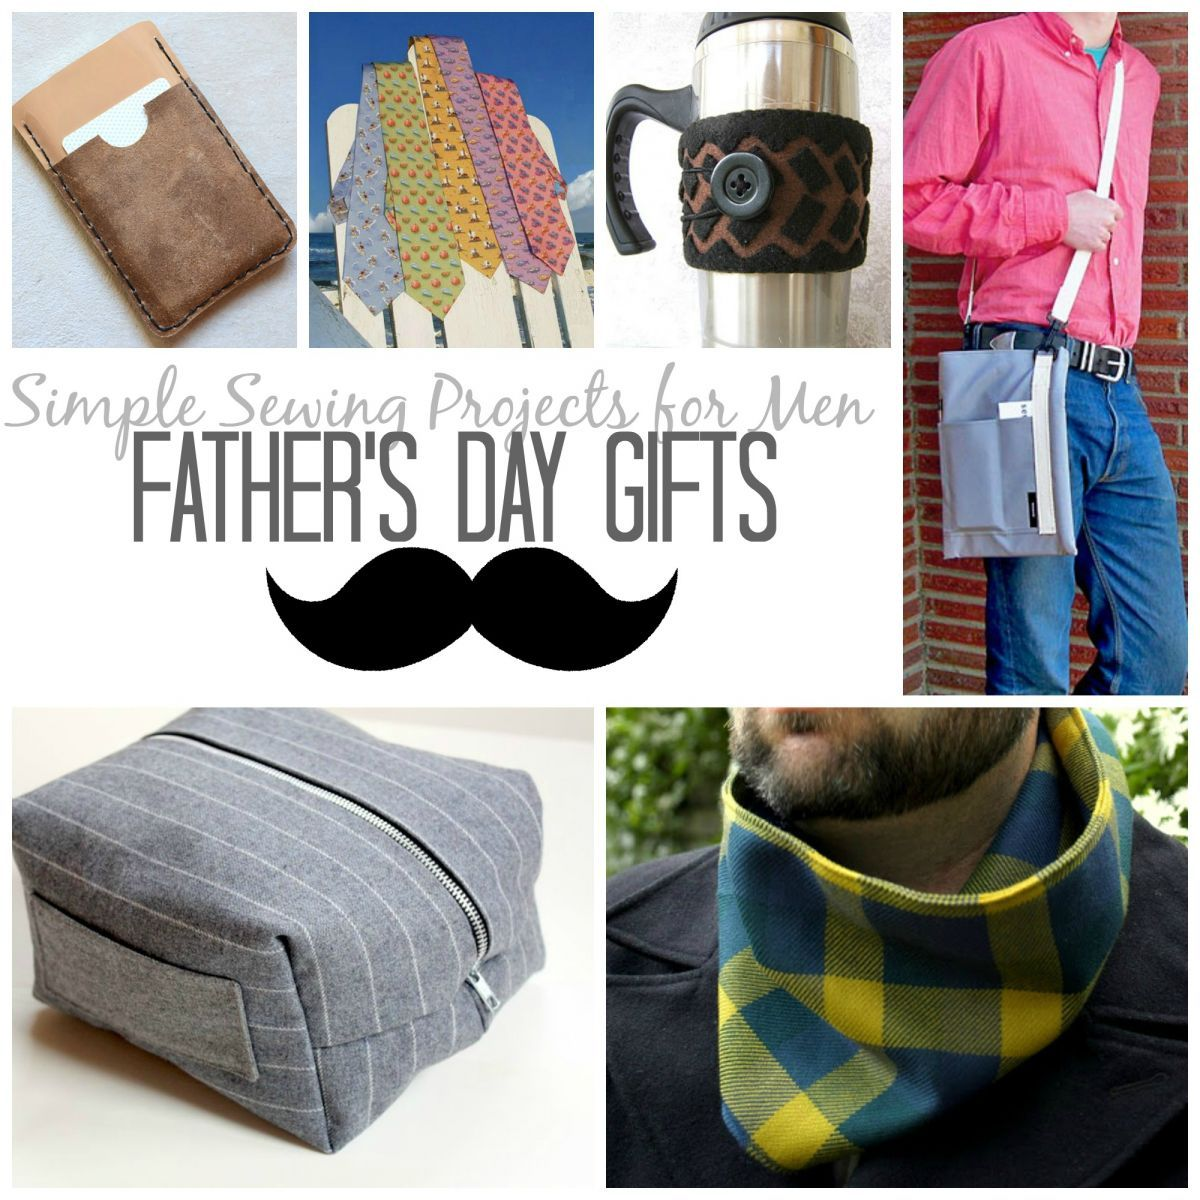 Easy Diy Birthday Gifts For Dad 21 Simple Sewn Gifts For Men Birthday And Father 39s Day